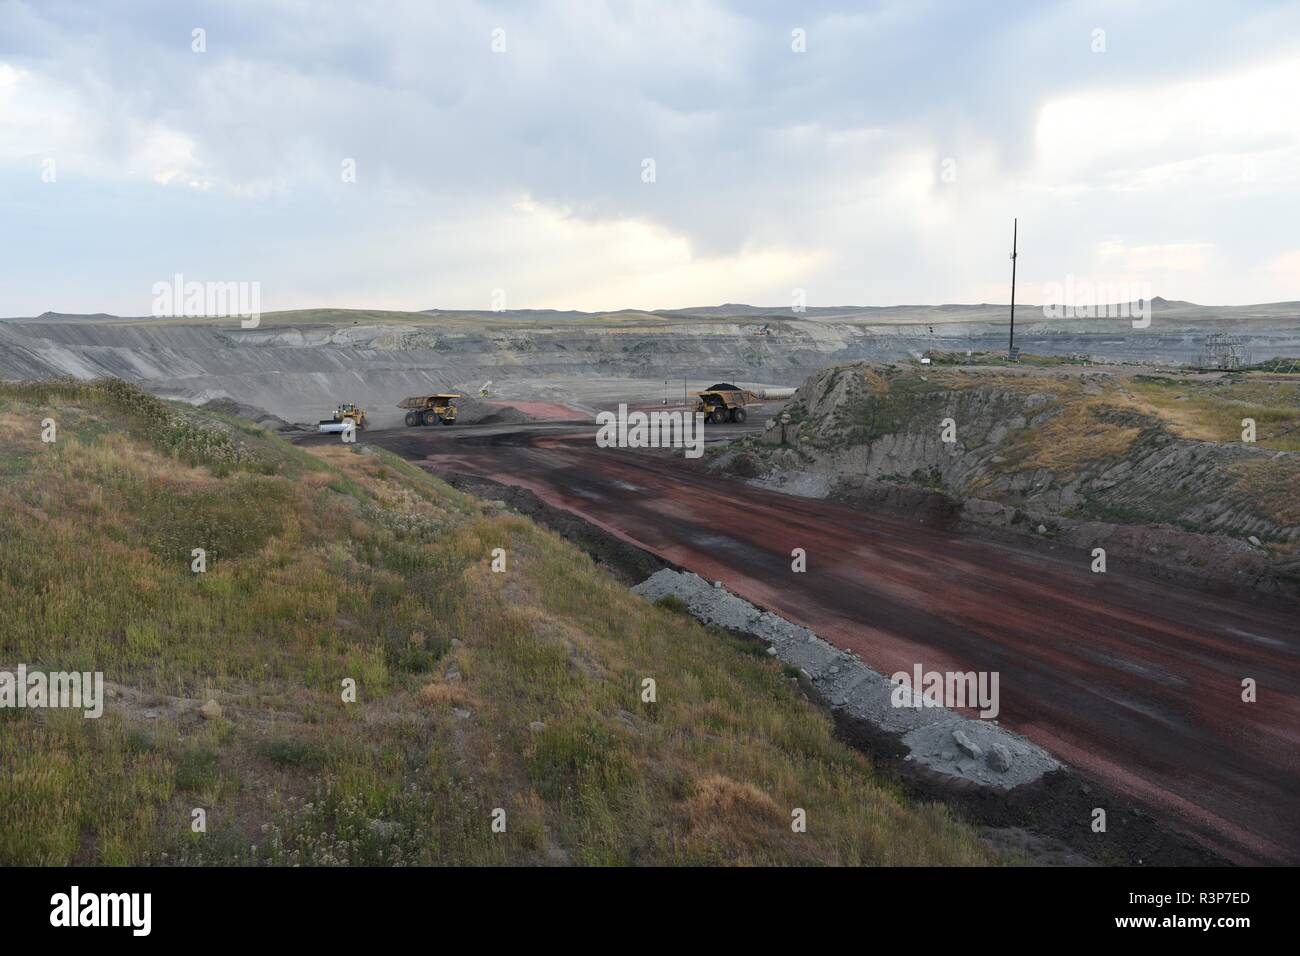 A large coal mining truck transports coal inside an open pit coal mine in the Powder River Basin of Wyoming, USA. Stock Photo